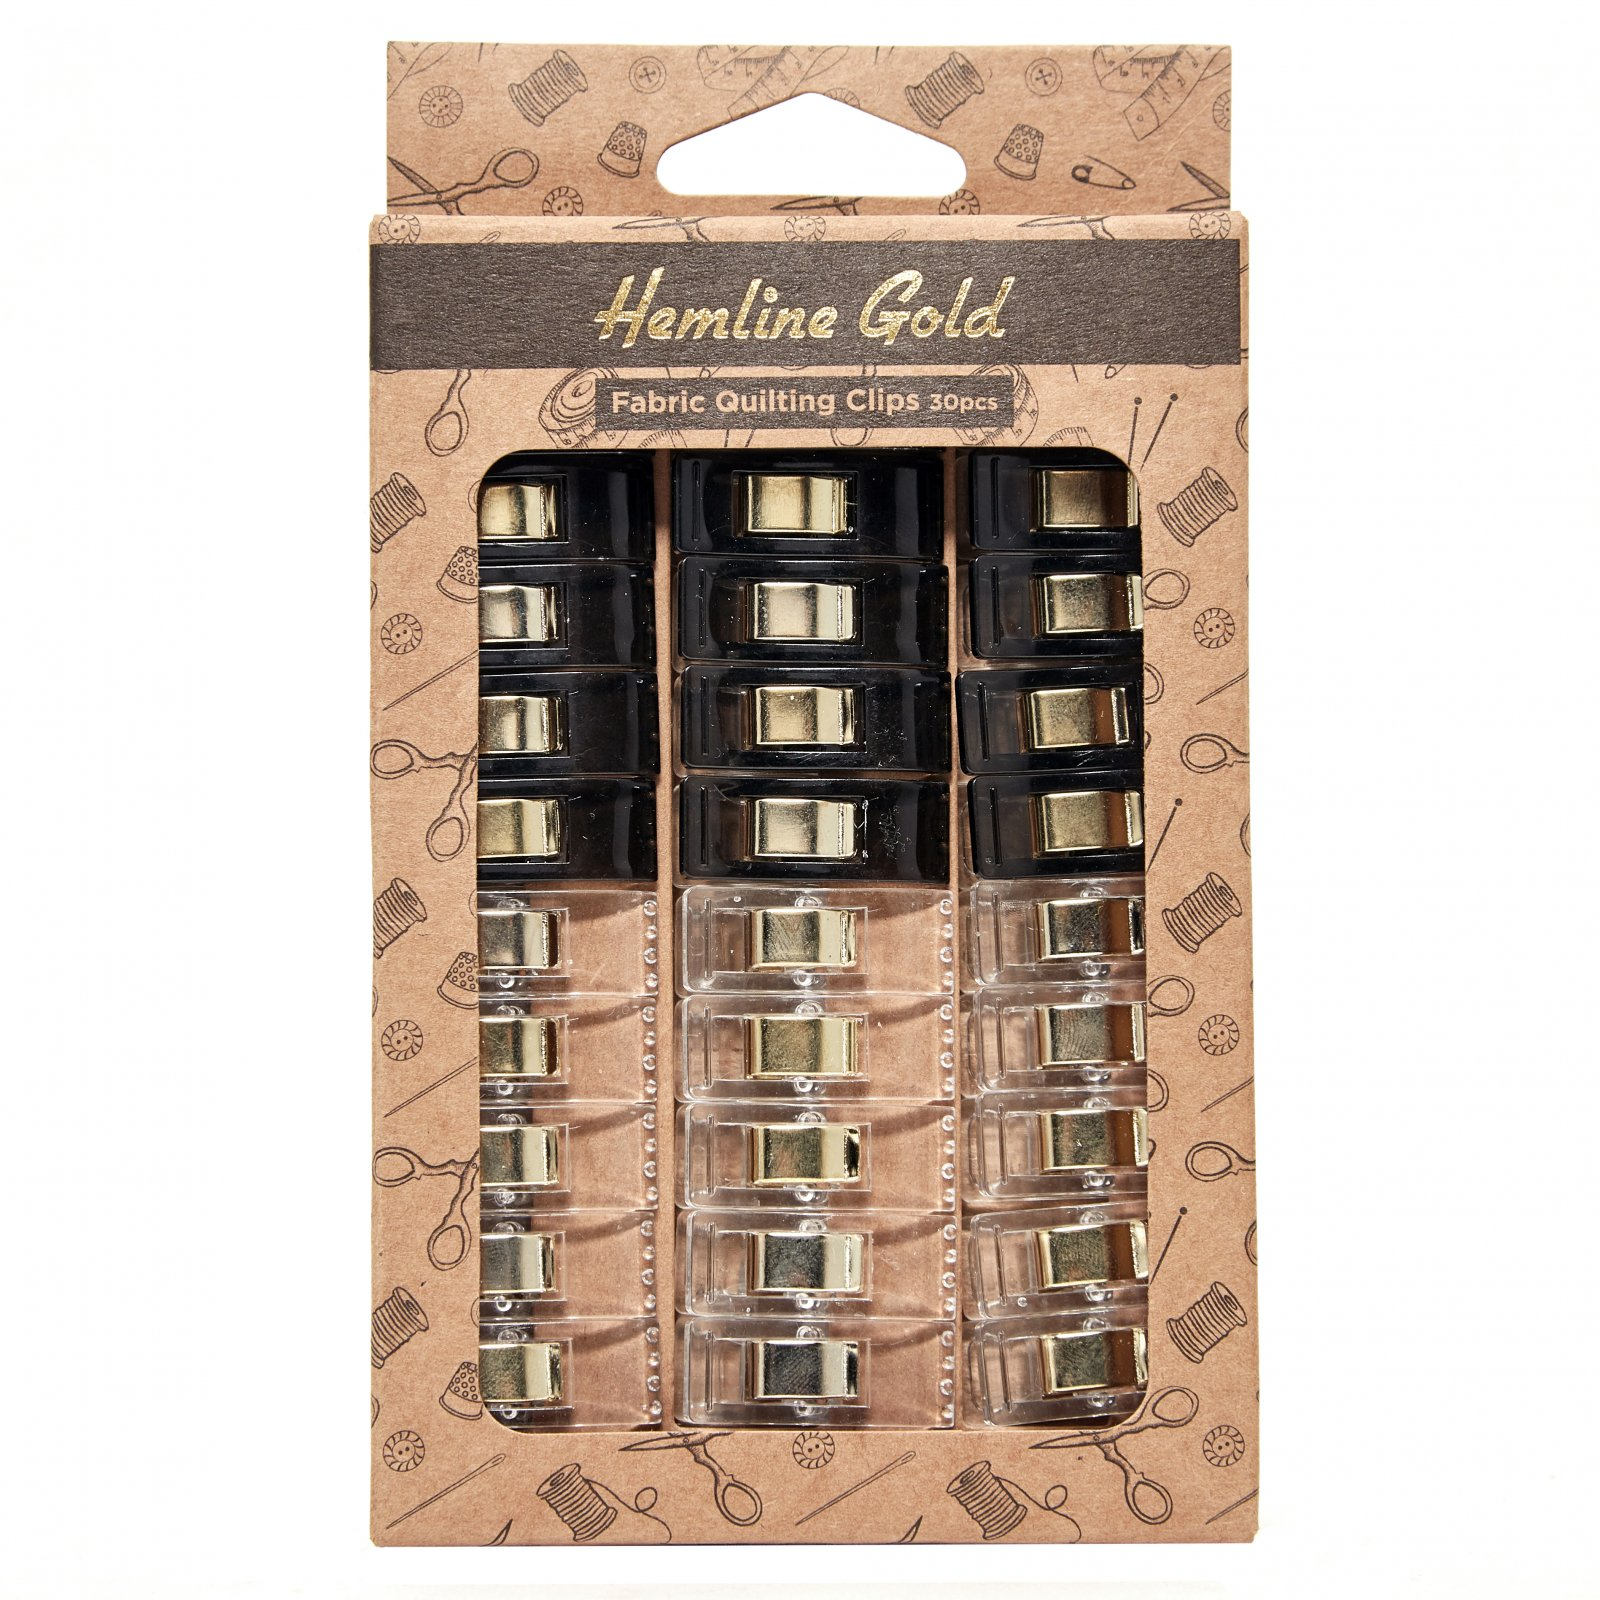 Quilting Fabric Clips - Pack of 30 Hemline Gold